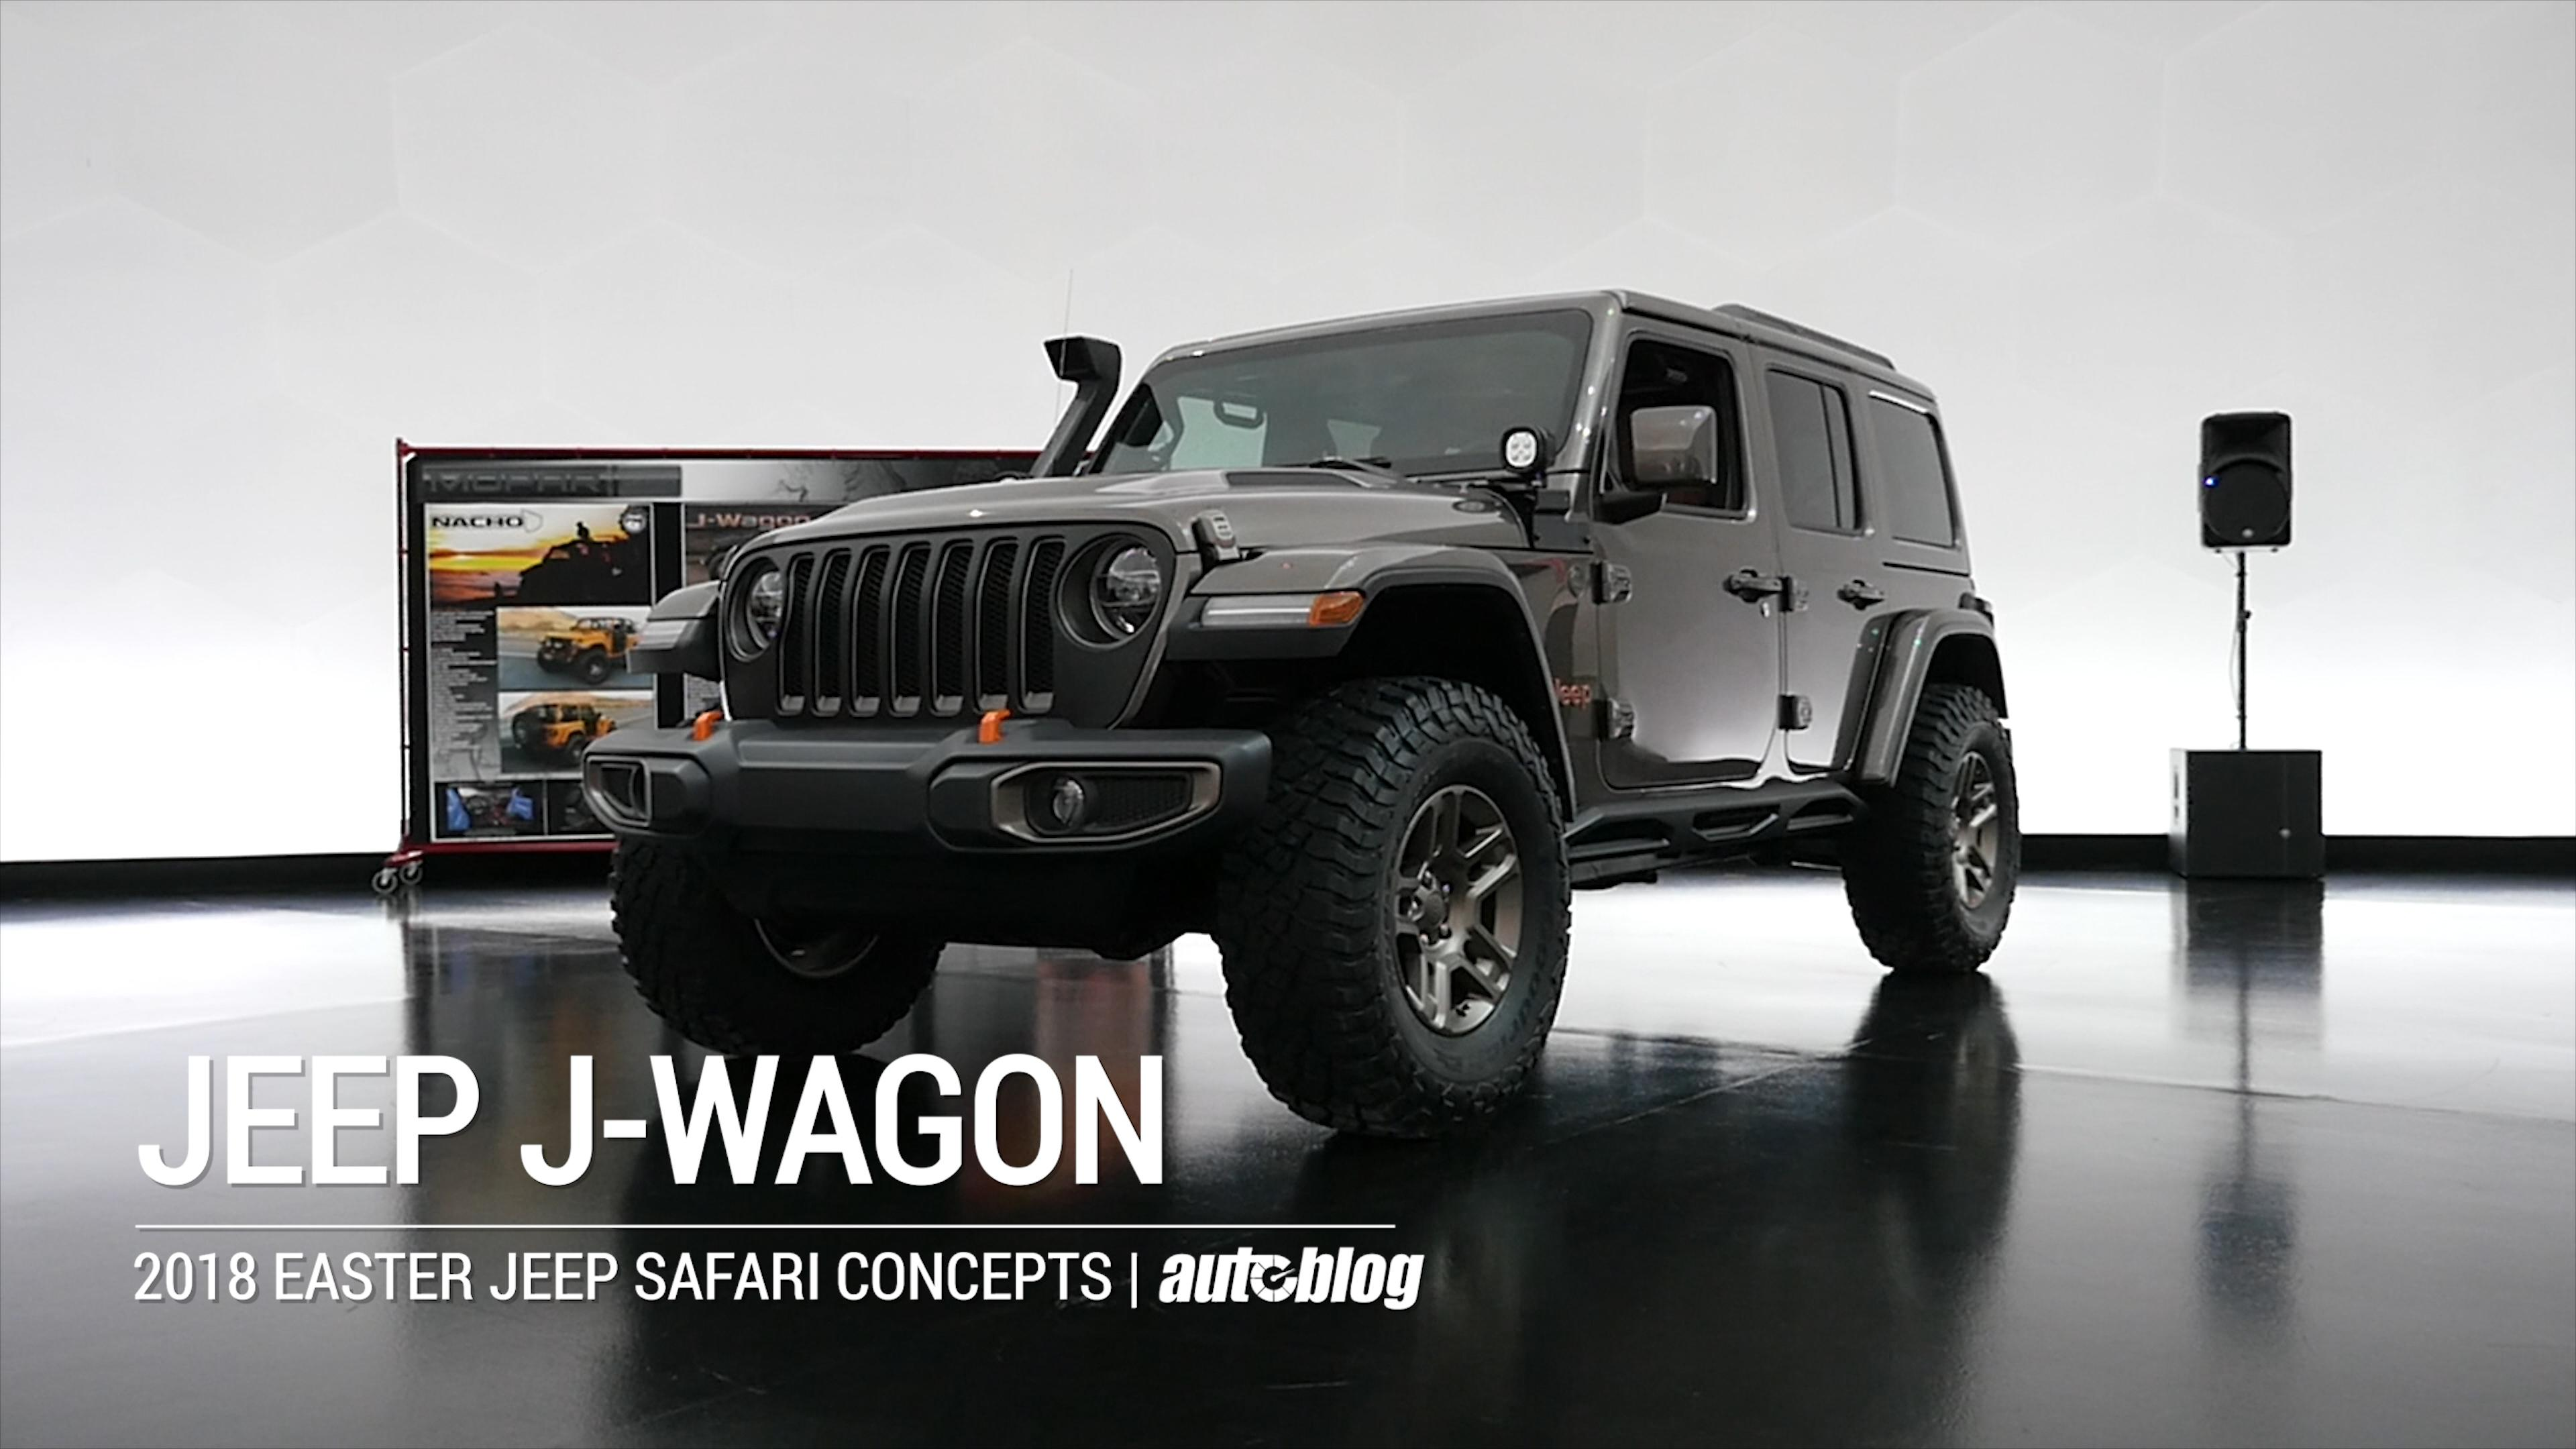 Jeep Reveals 7 Custom Off Roaders For The Moab Easter Safari White Sahara Lifted With Tire Carrier And Led Tail Lights Designed This One To Be Best Of Both Worlds Adding A Snorkel Extra Cabin Sealing Five Inch Road